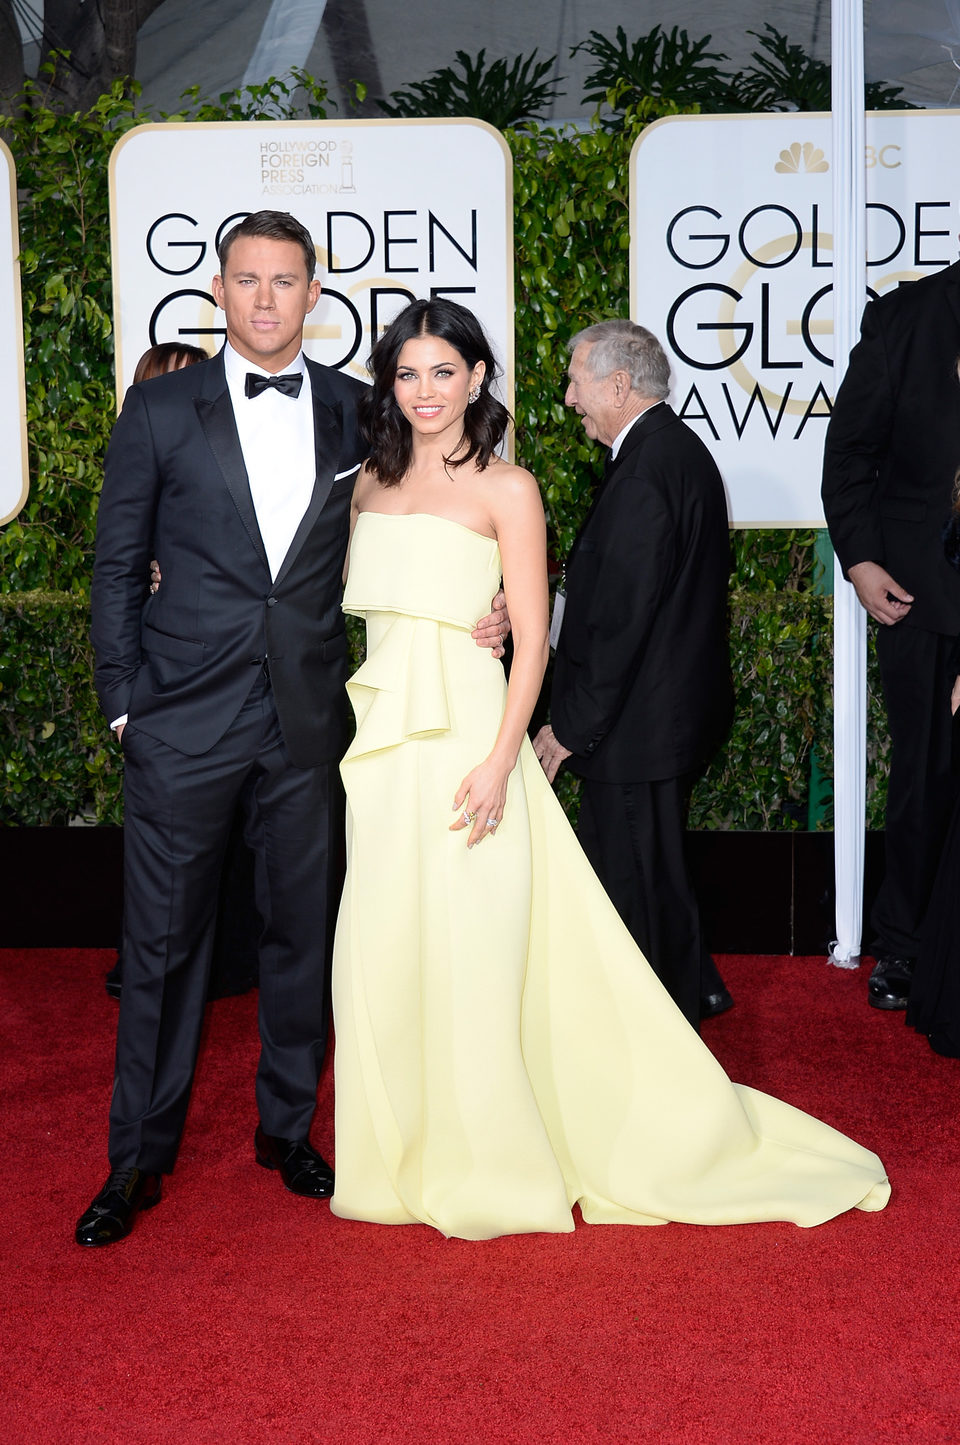 Channing Tatum and Jenna Dewan at the Golden Globes 2015 red carpet